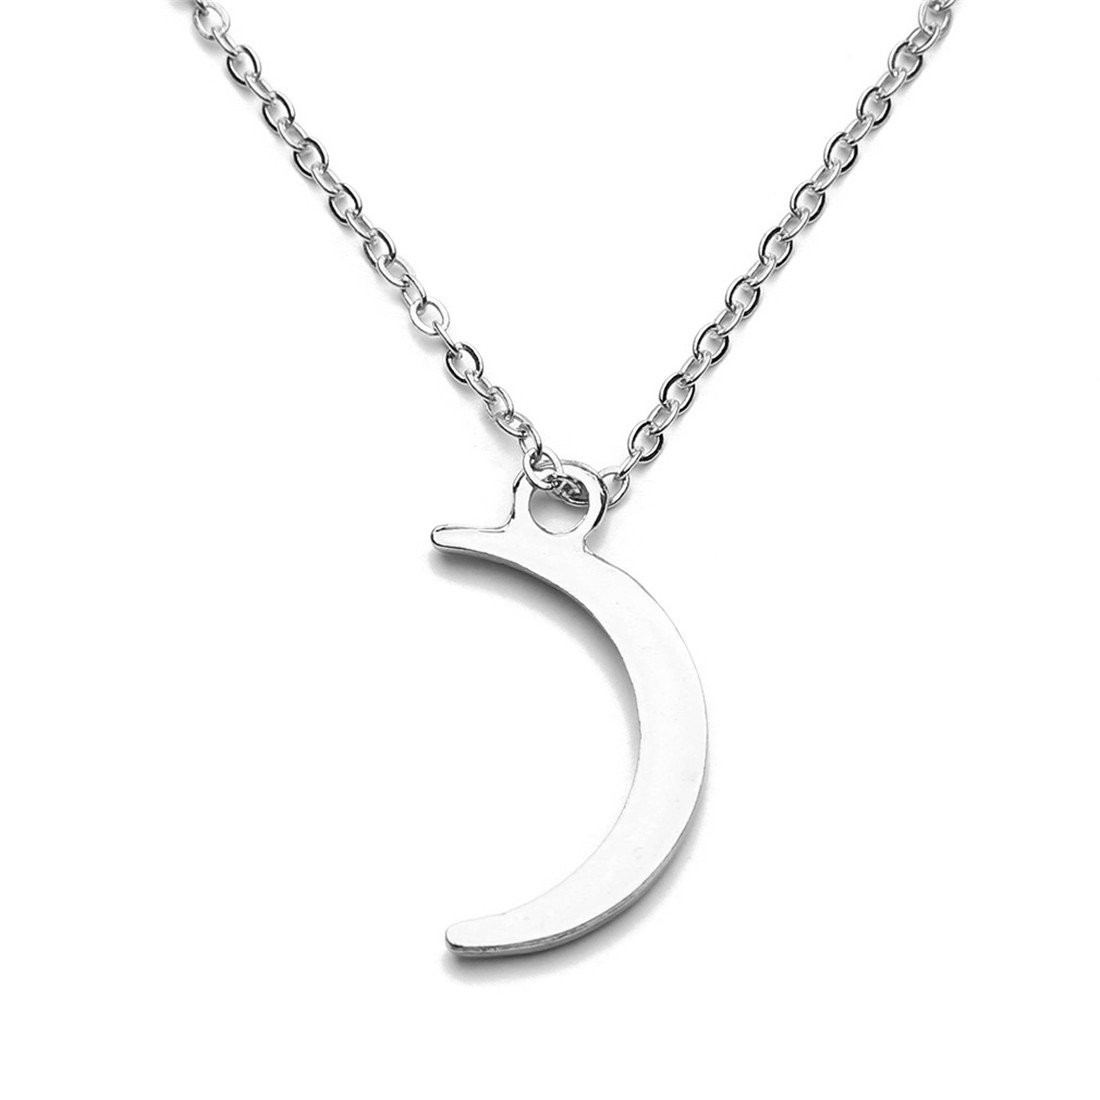 VWH Women Girls Simple Moon Stars Pendant Necklace Short Necklace Clavicle Necklace (sliver)